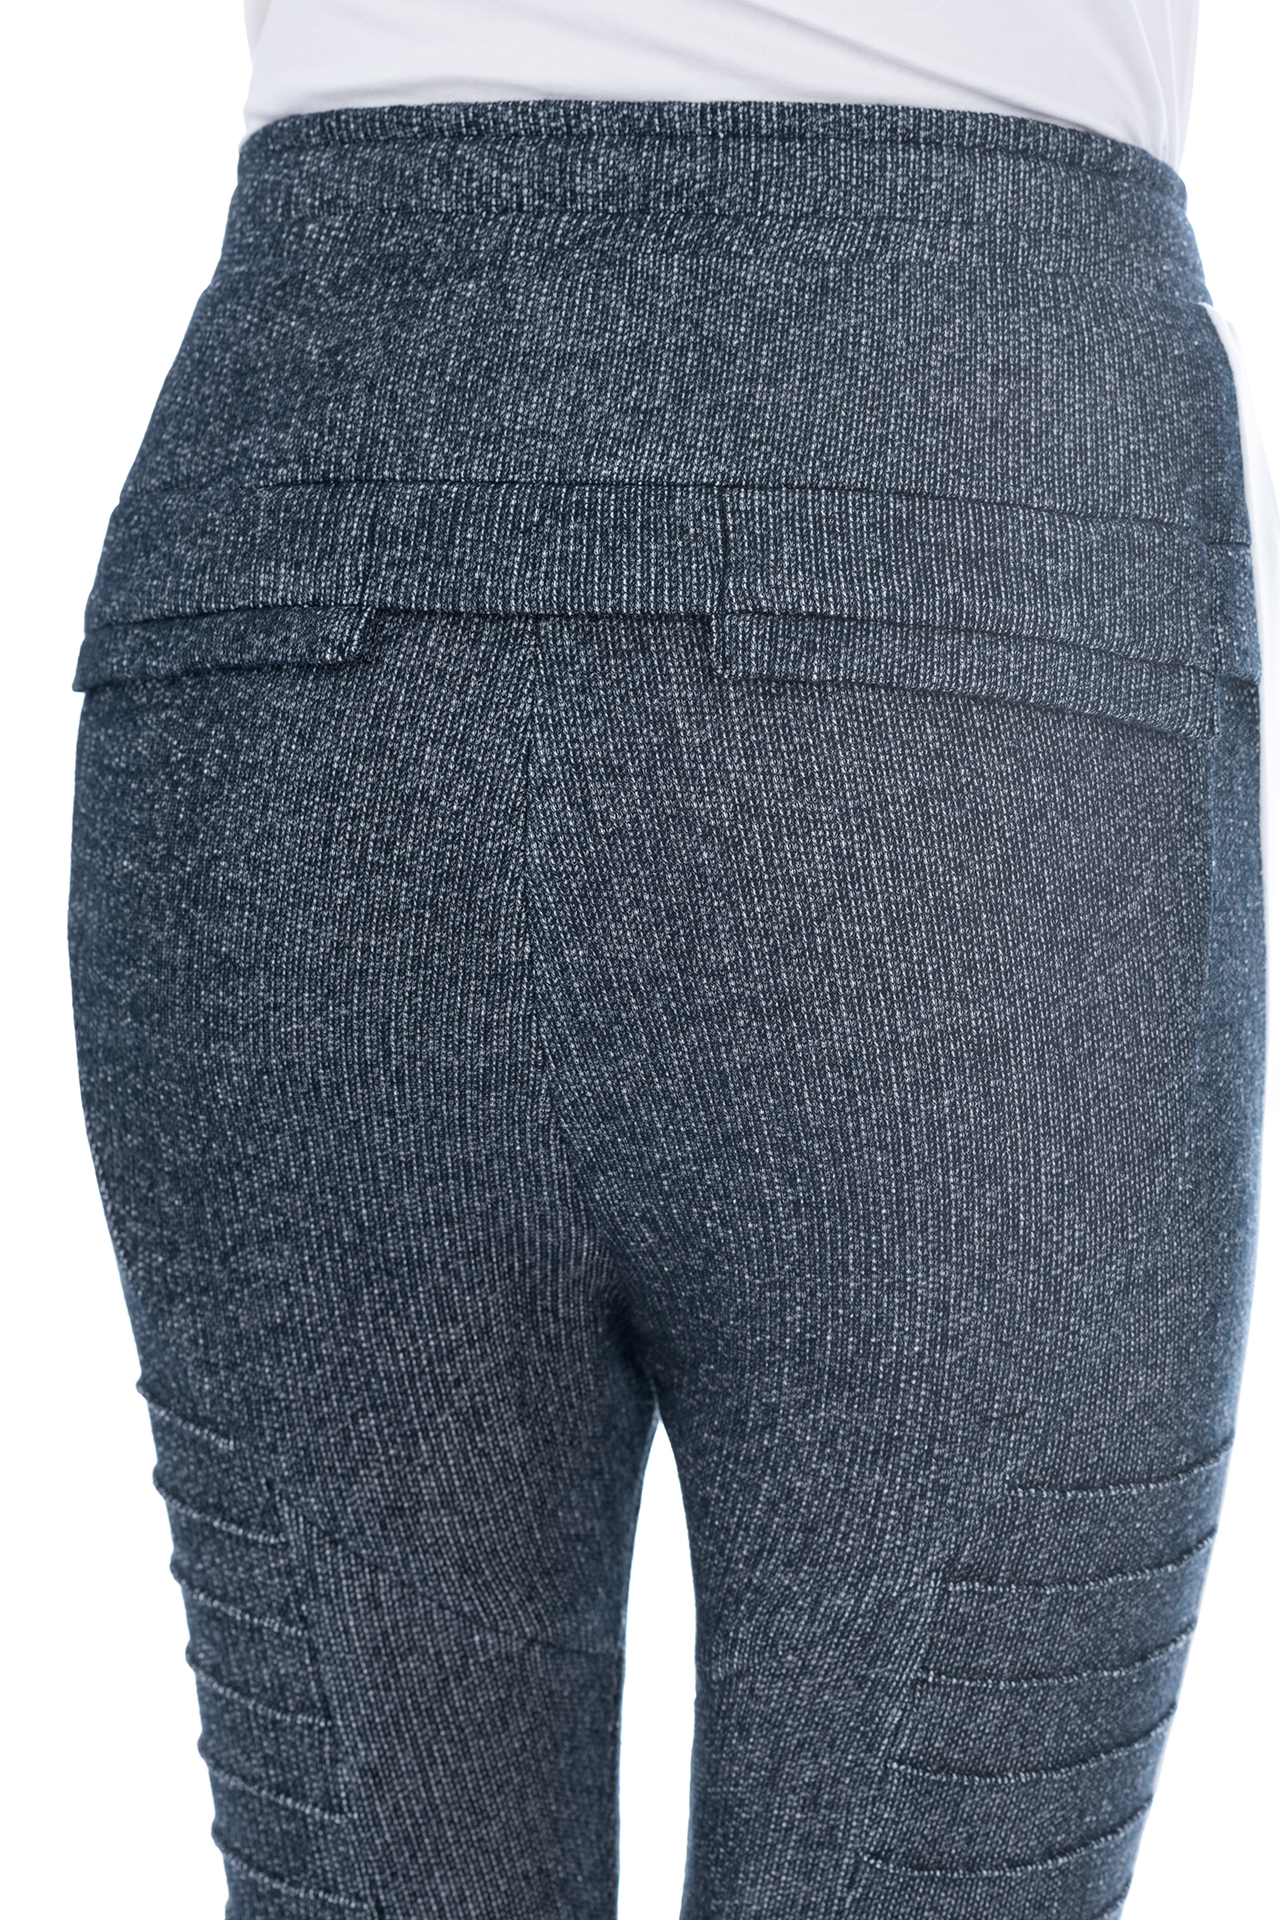 FRENCH TERRY PANT BLUE 5